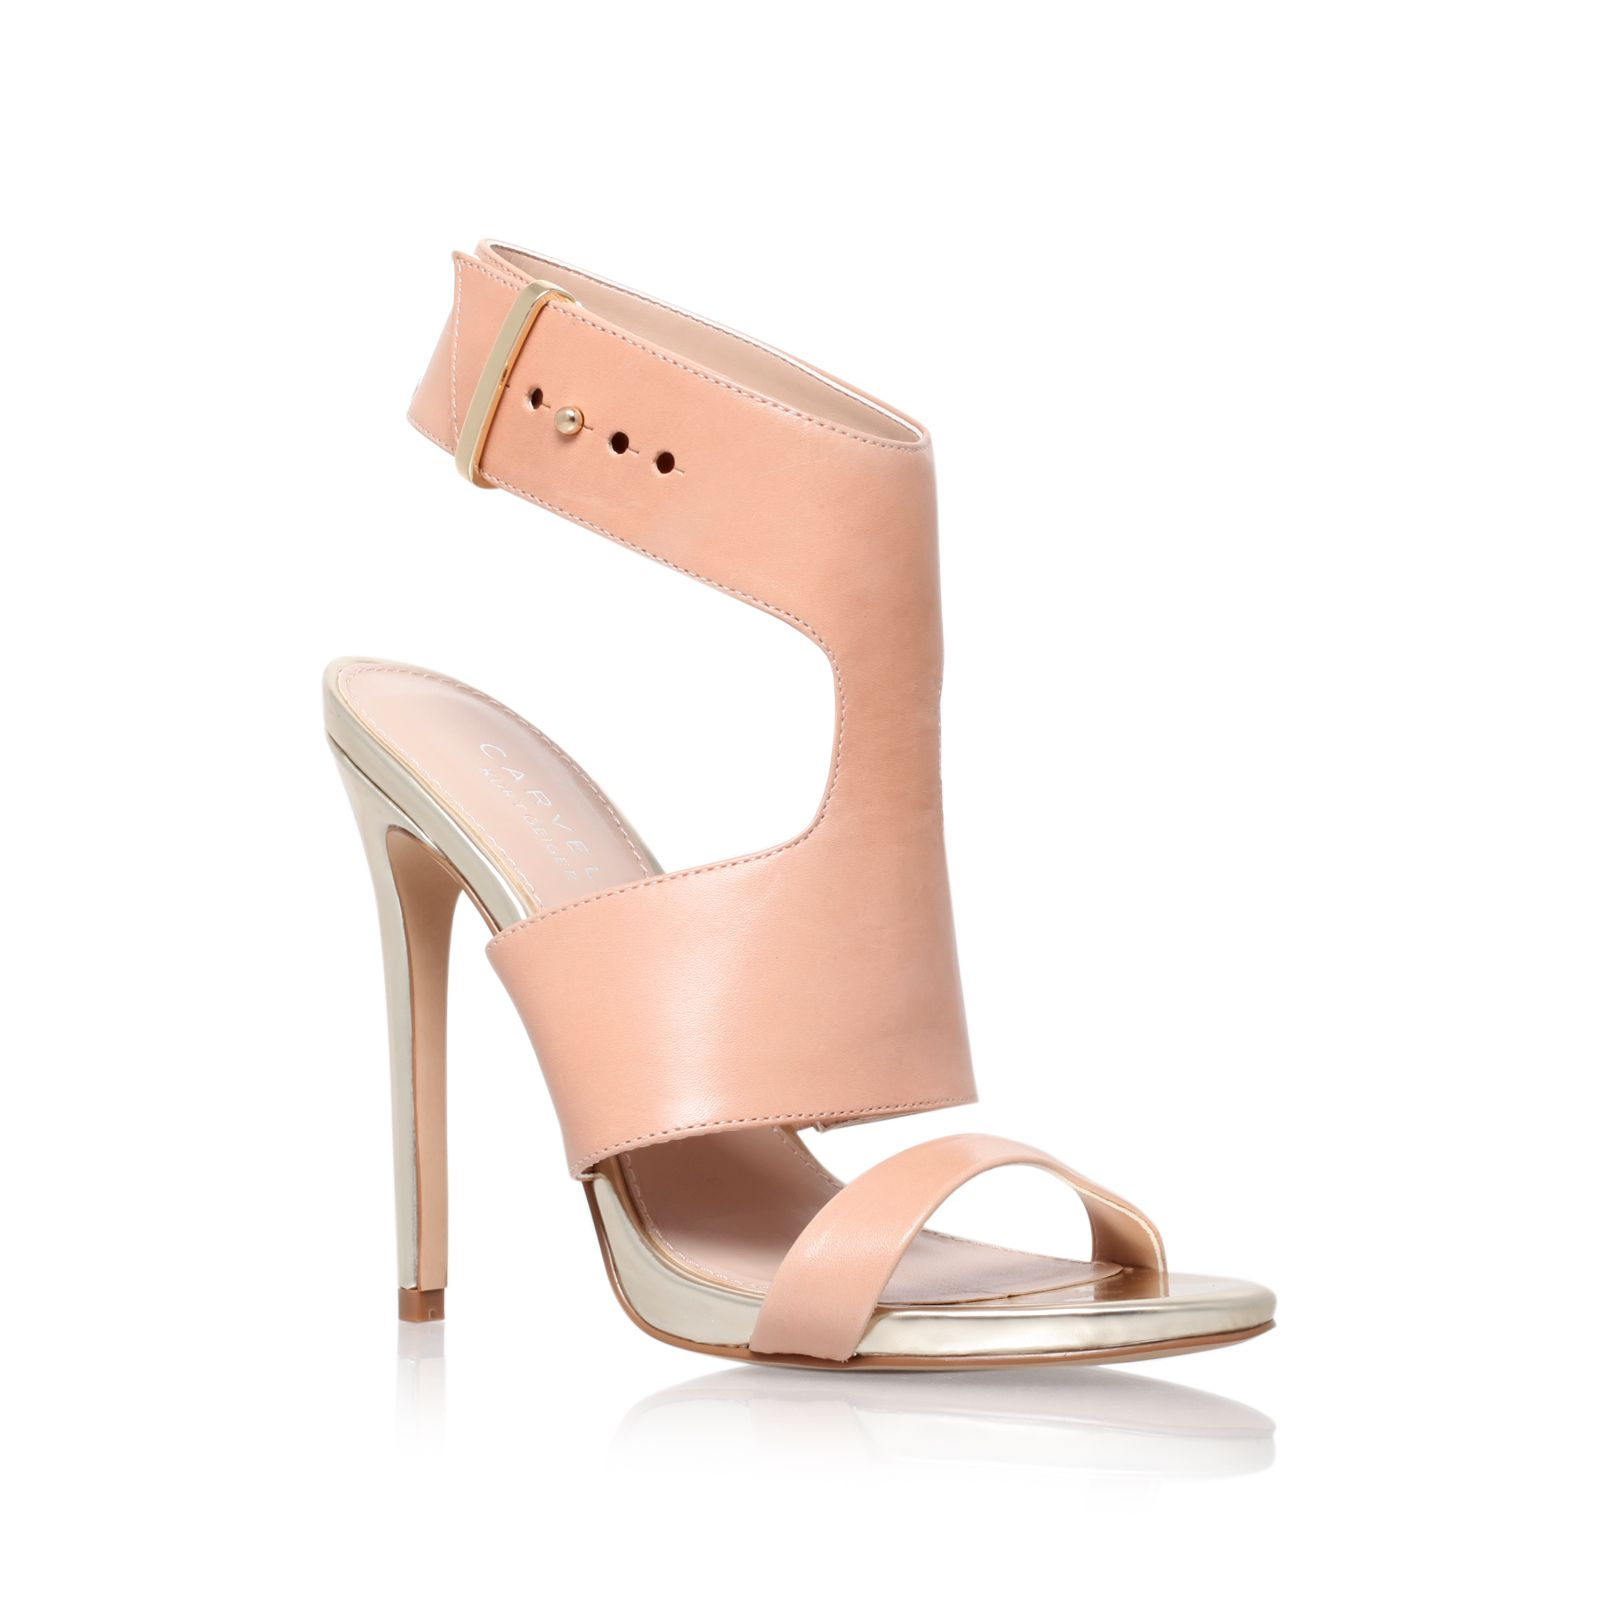 Group high heel sandals